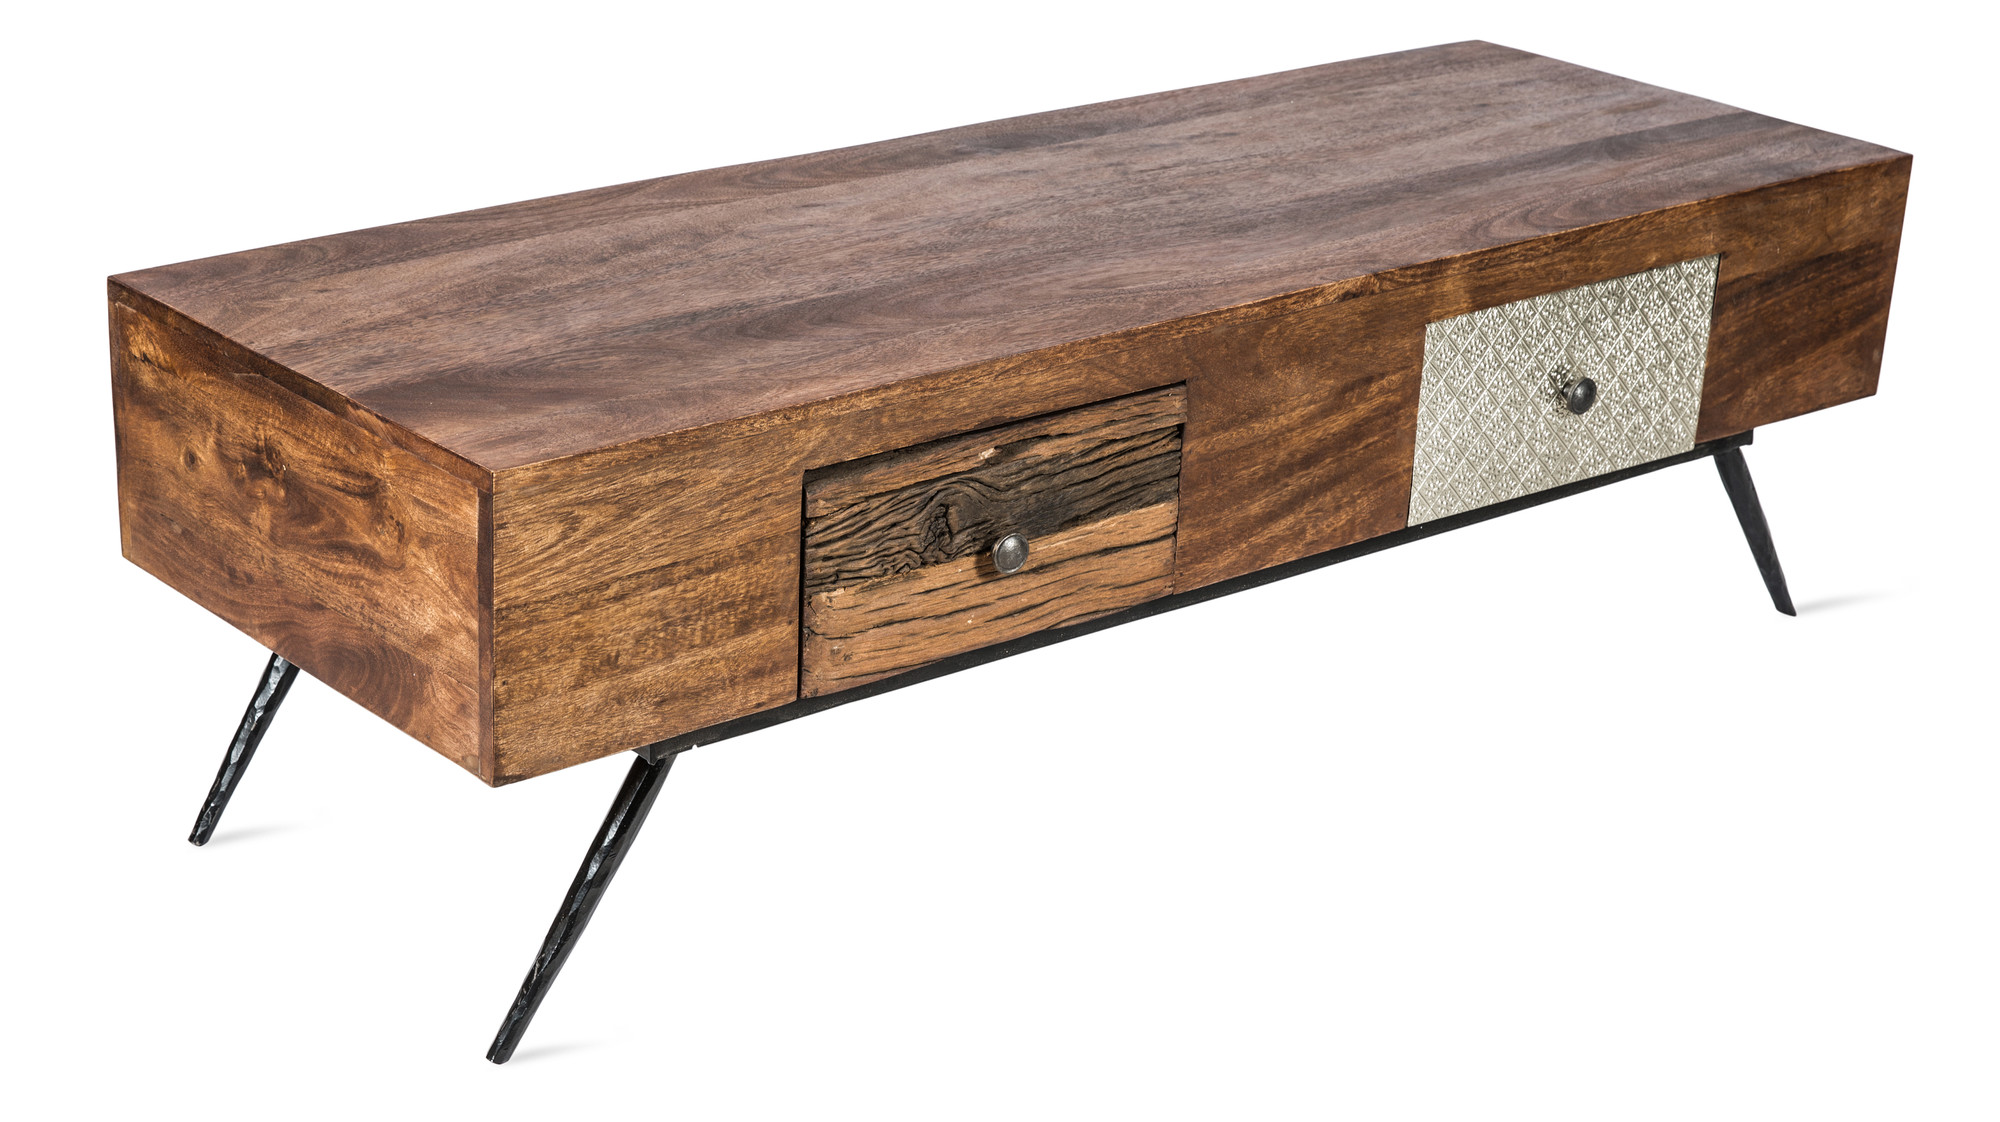 SKU #CASK9625 Low Wood U0026 Metal Coffee Table Is Also Sometimes Listed Under  The Following Manufacturer Numbers: LX05